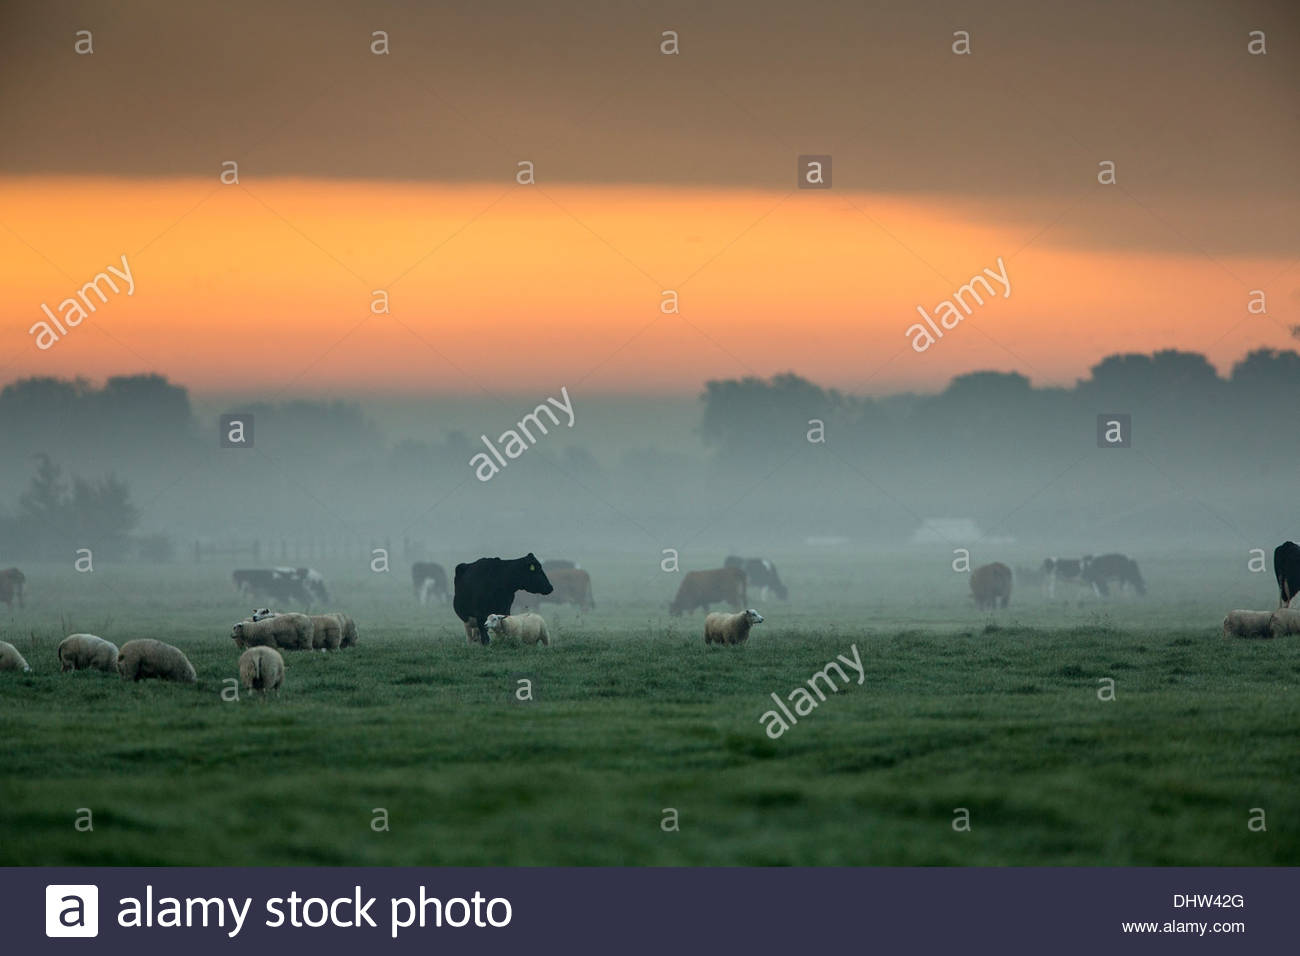 Netherlands, Weesp, Cows and sheep in meadow at sunrise - Stock Image